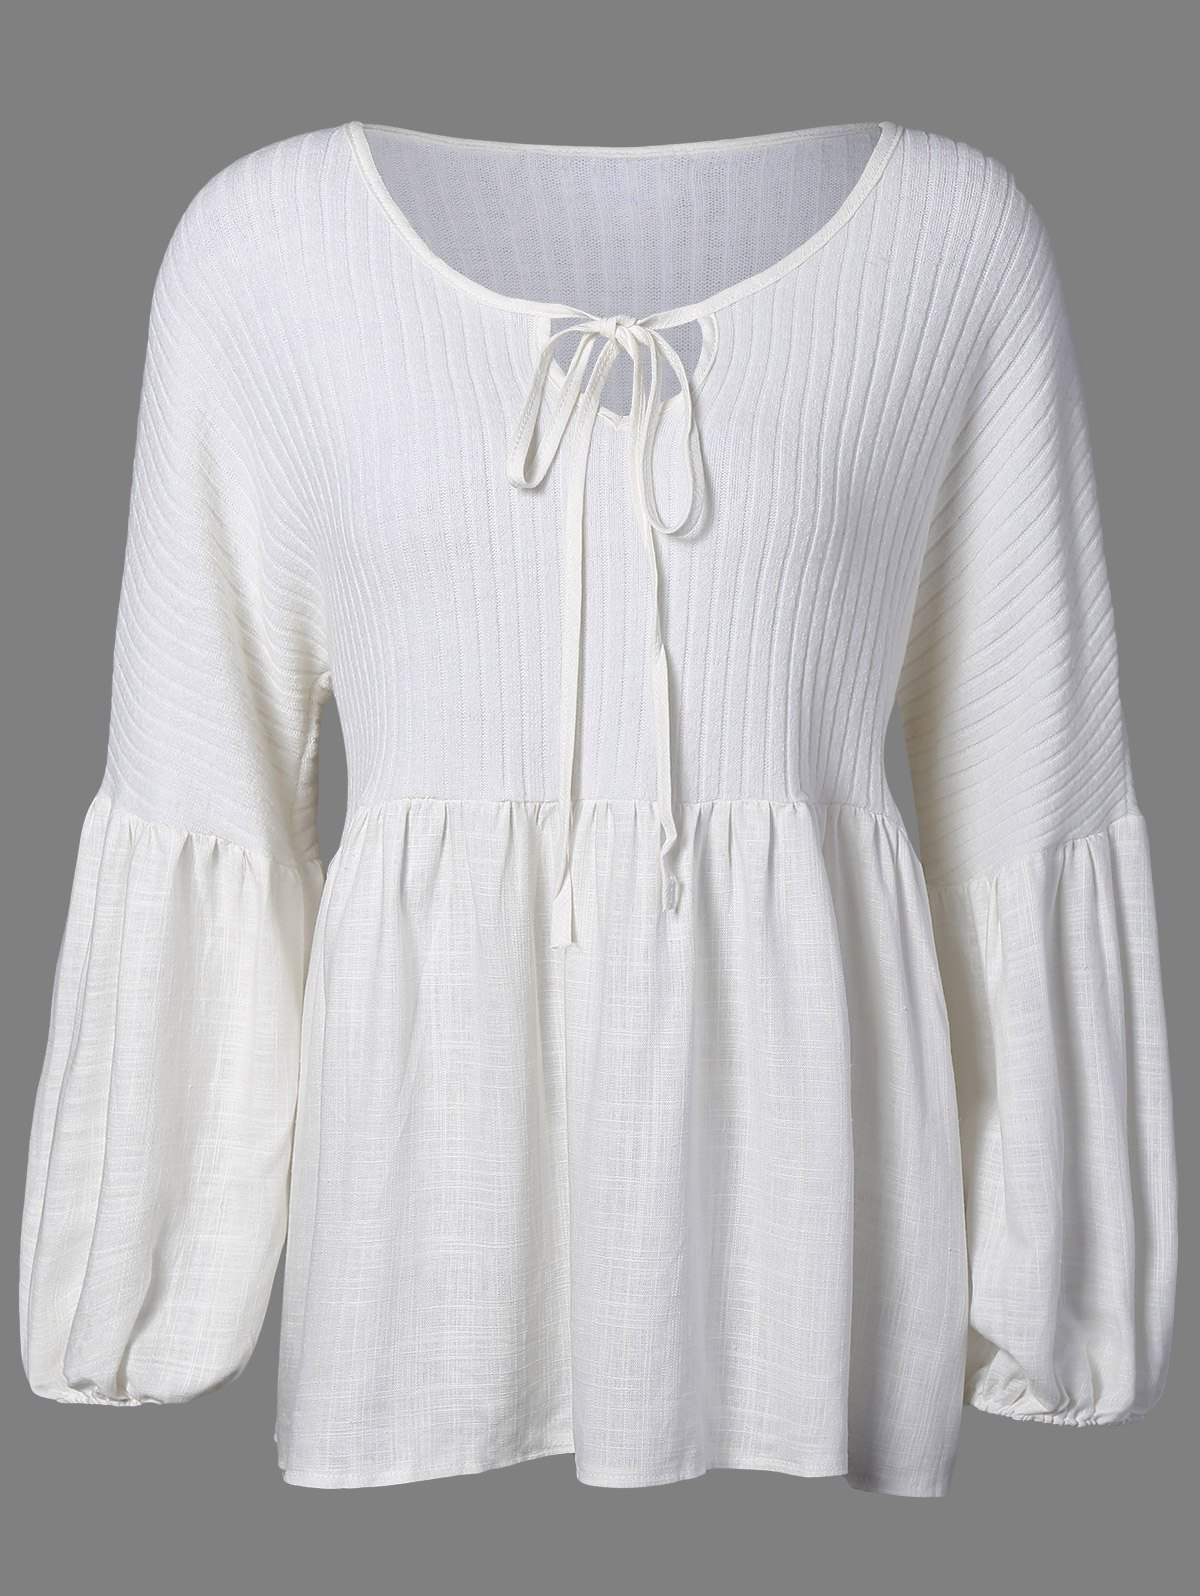 Puff Sleeve Knitted Insert Blouse - WHITE XL